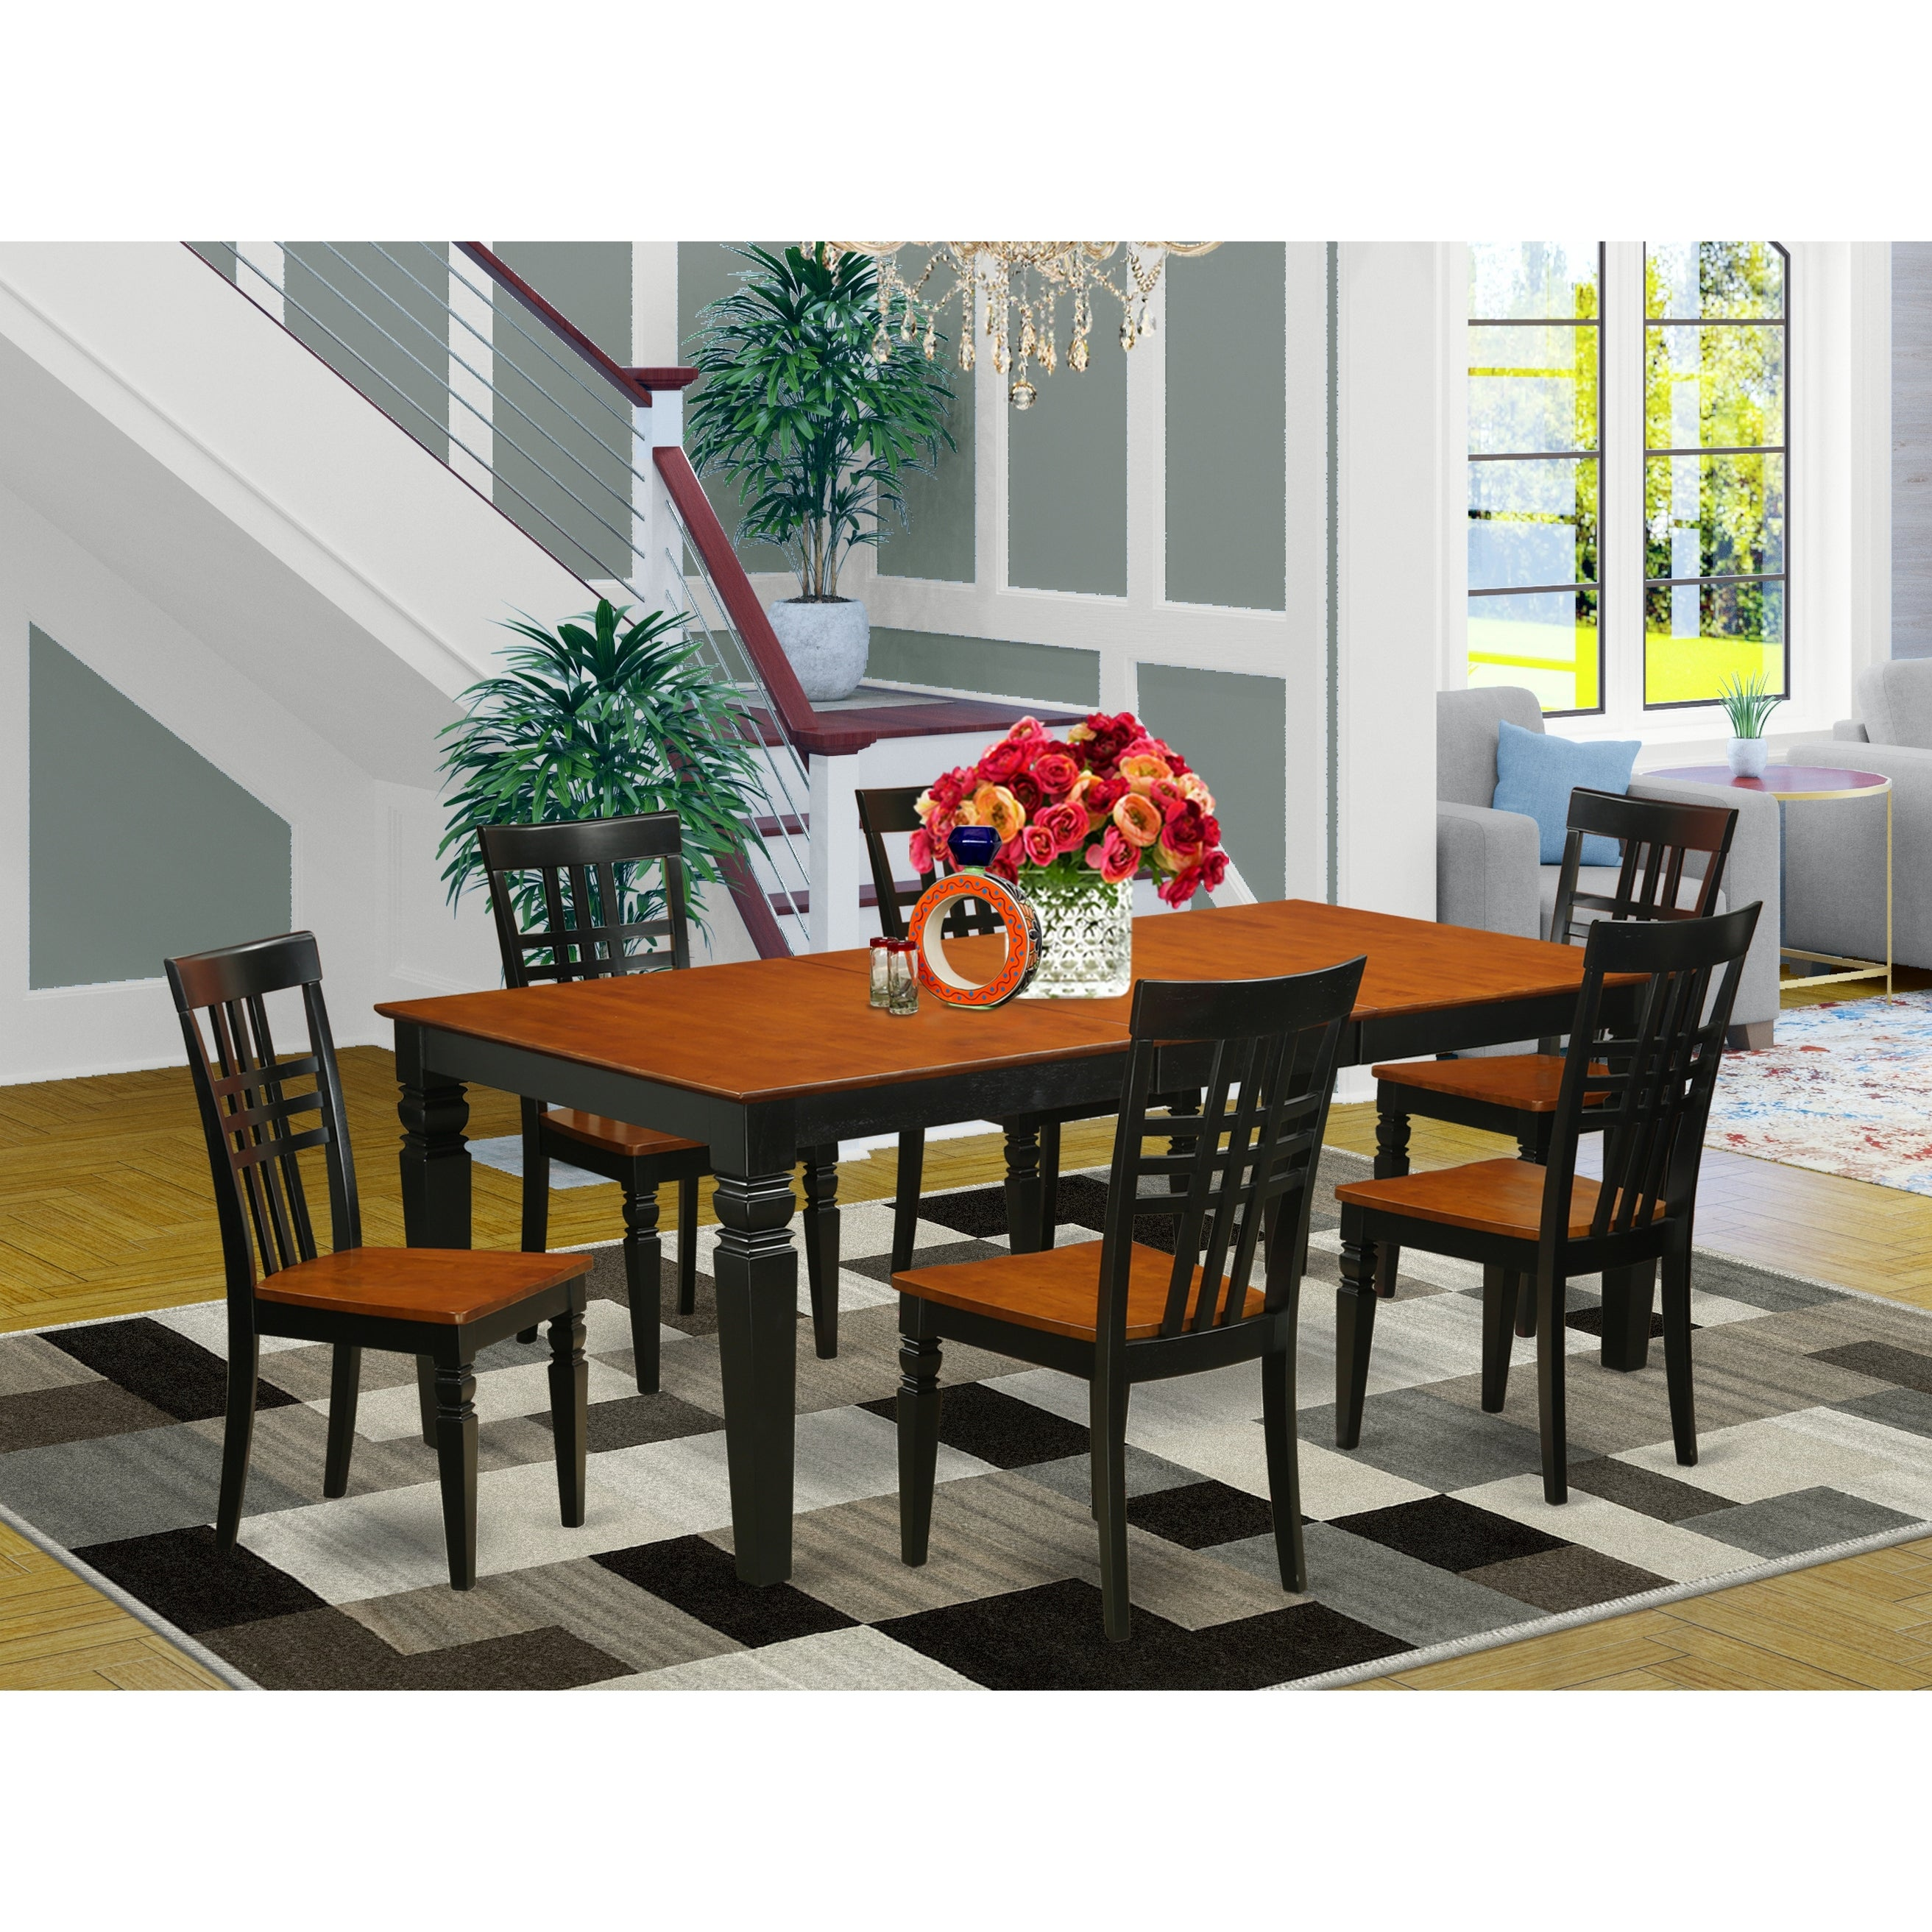 Shop Logan Wood Extendable Dining Table And 6 Chairs Set Overstock 14366524